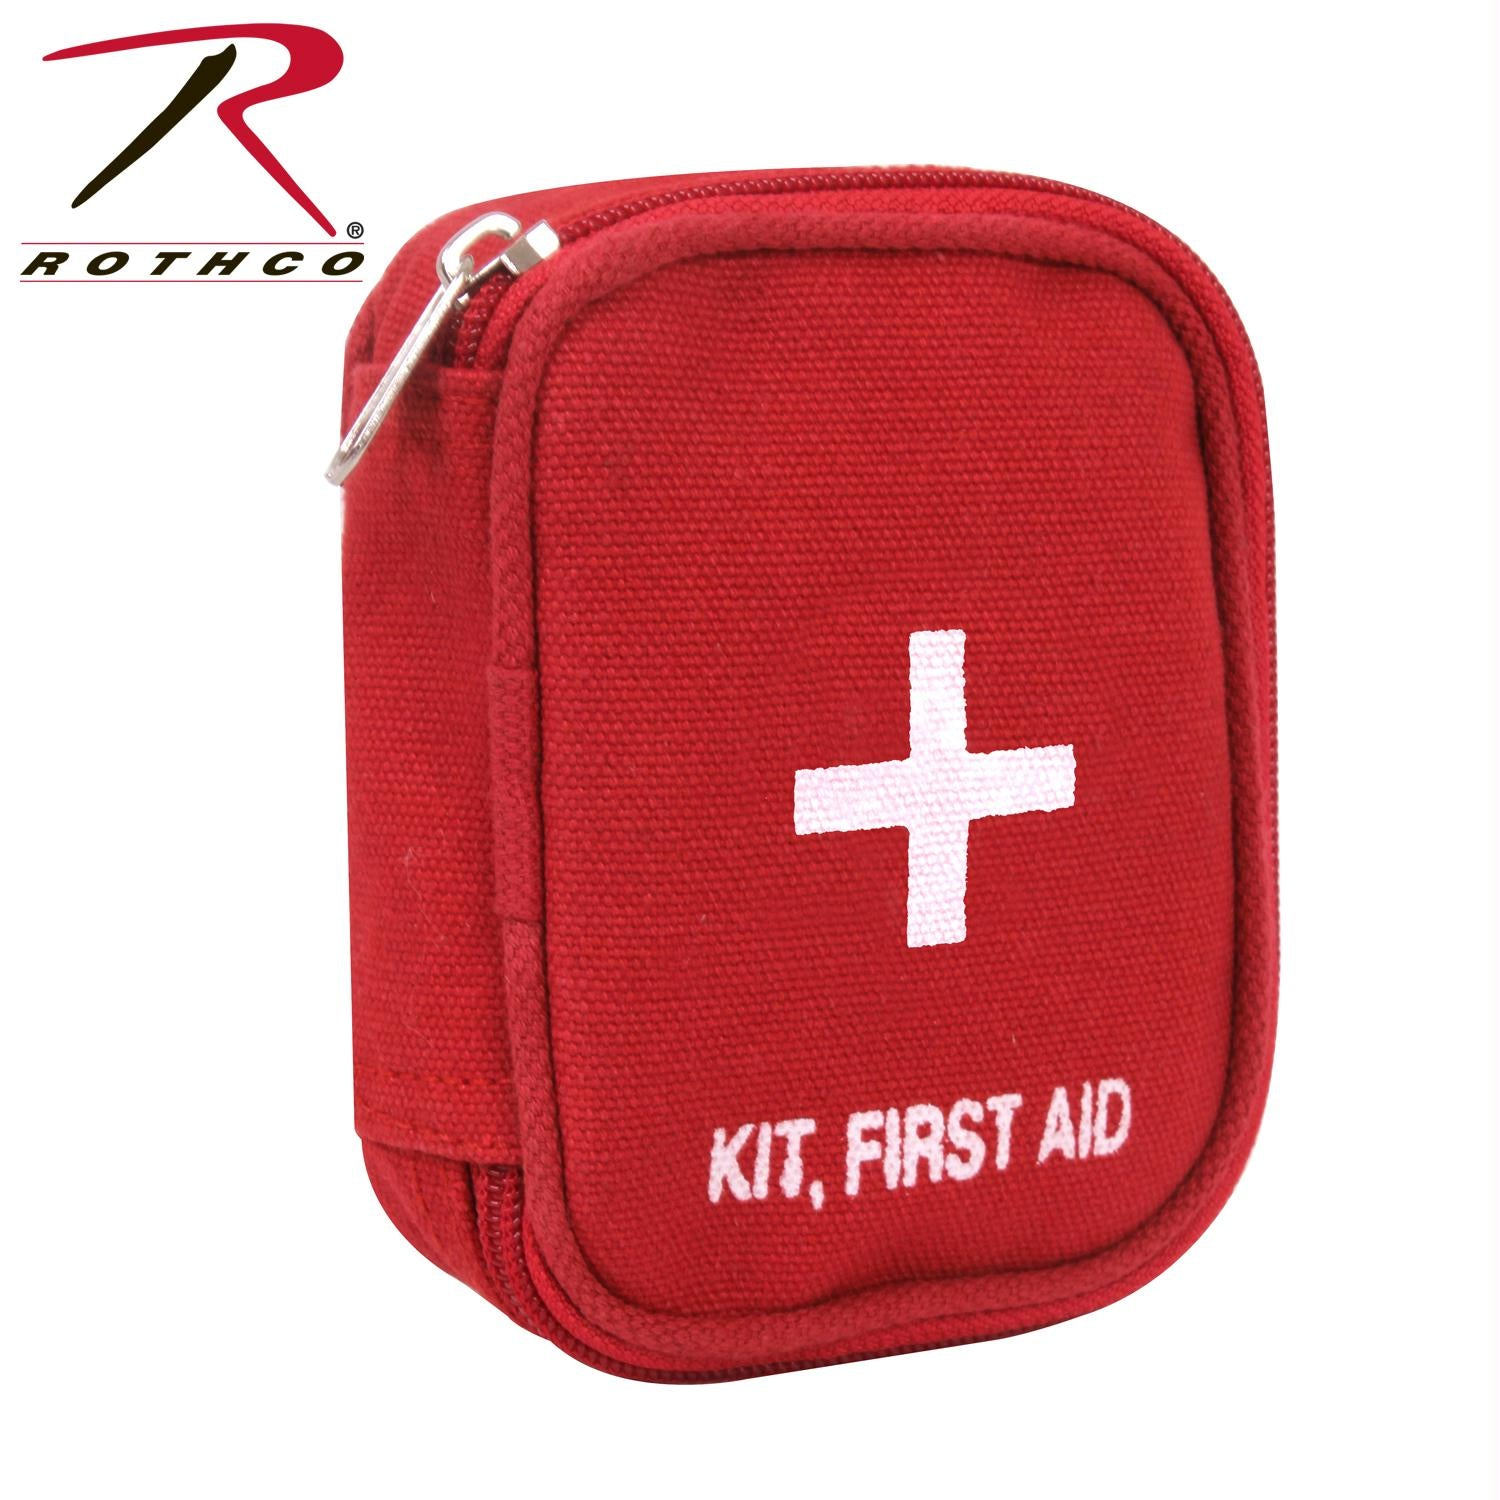 Rothco Military Zipper First Aid Kit